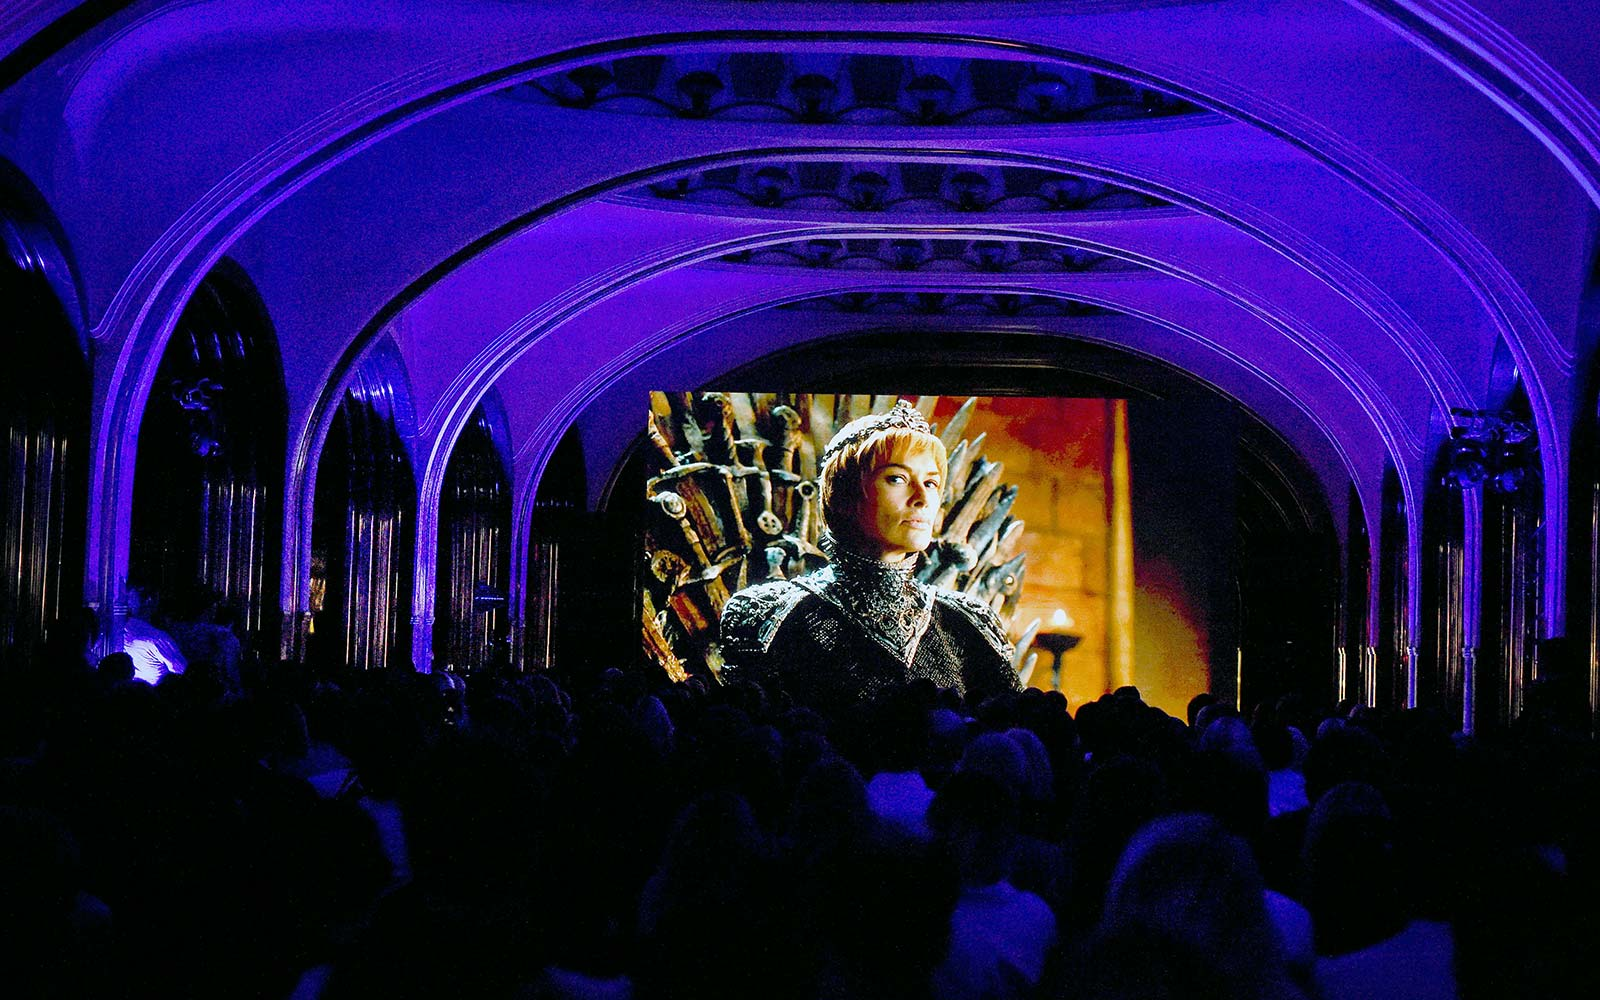 Attention 'Game of Thrones' Fans: This Theater in London Will Play All 67 Episodes in a Single Sitting